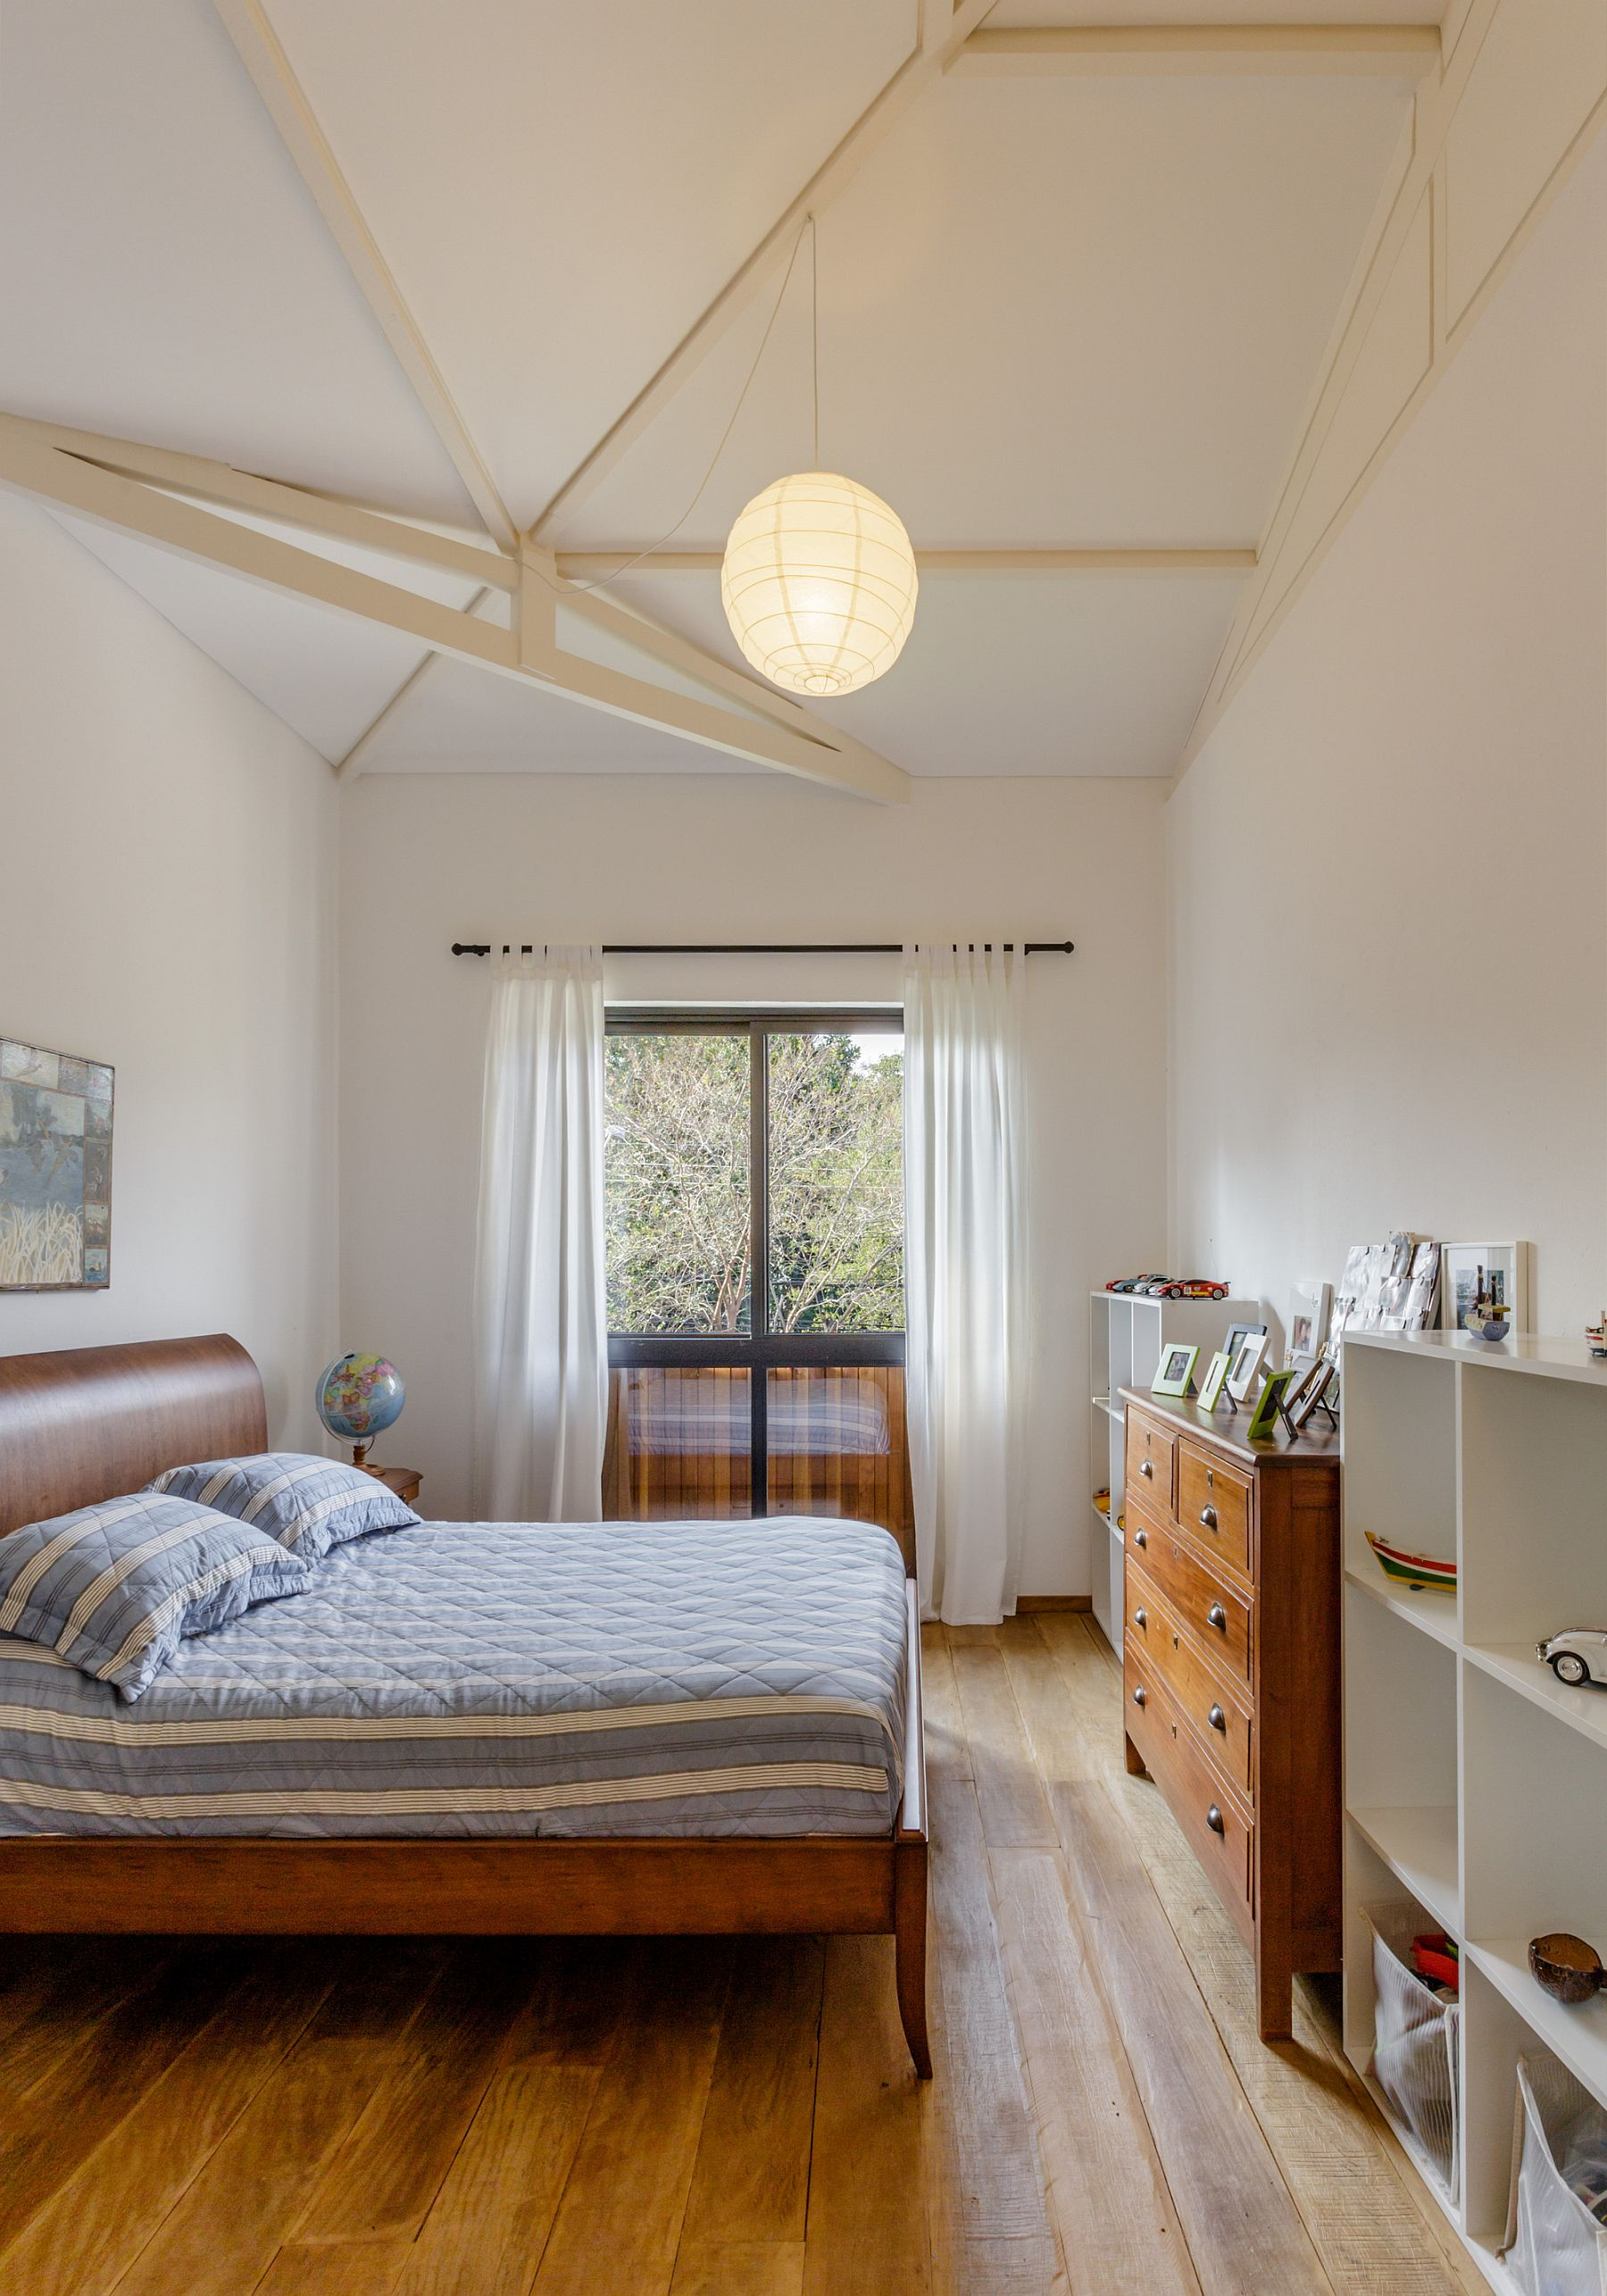 Lantern style lighting for the bedroom with sloped ceiling